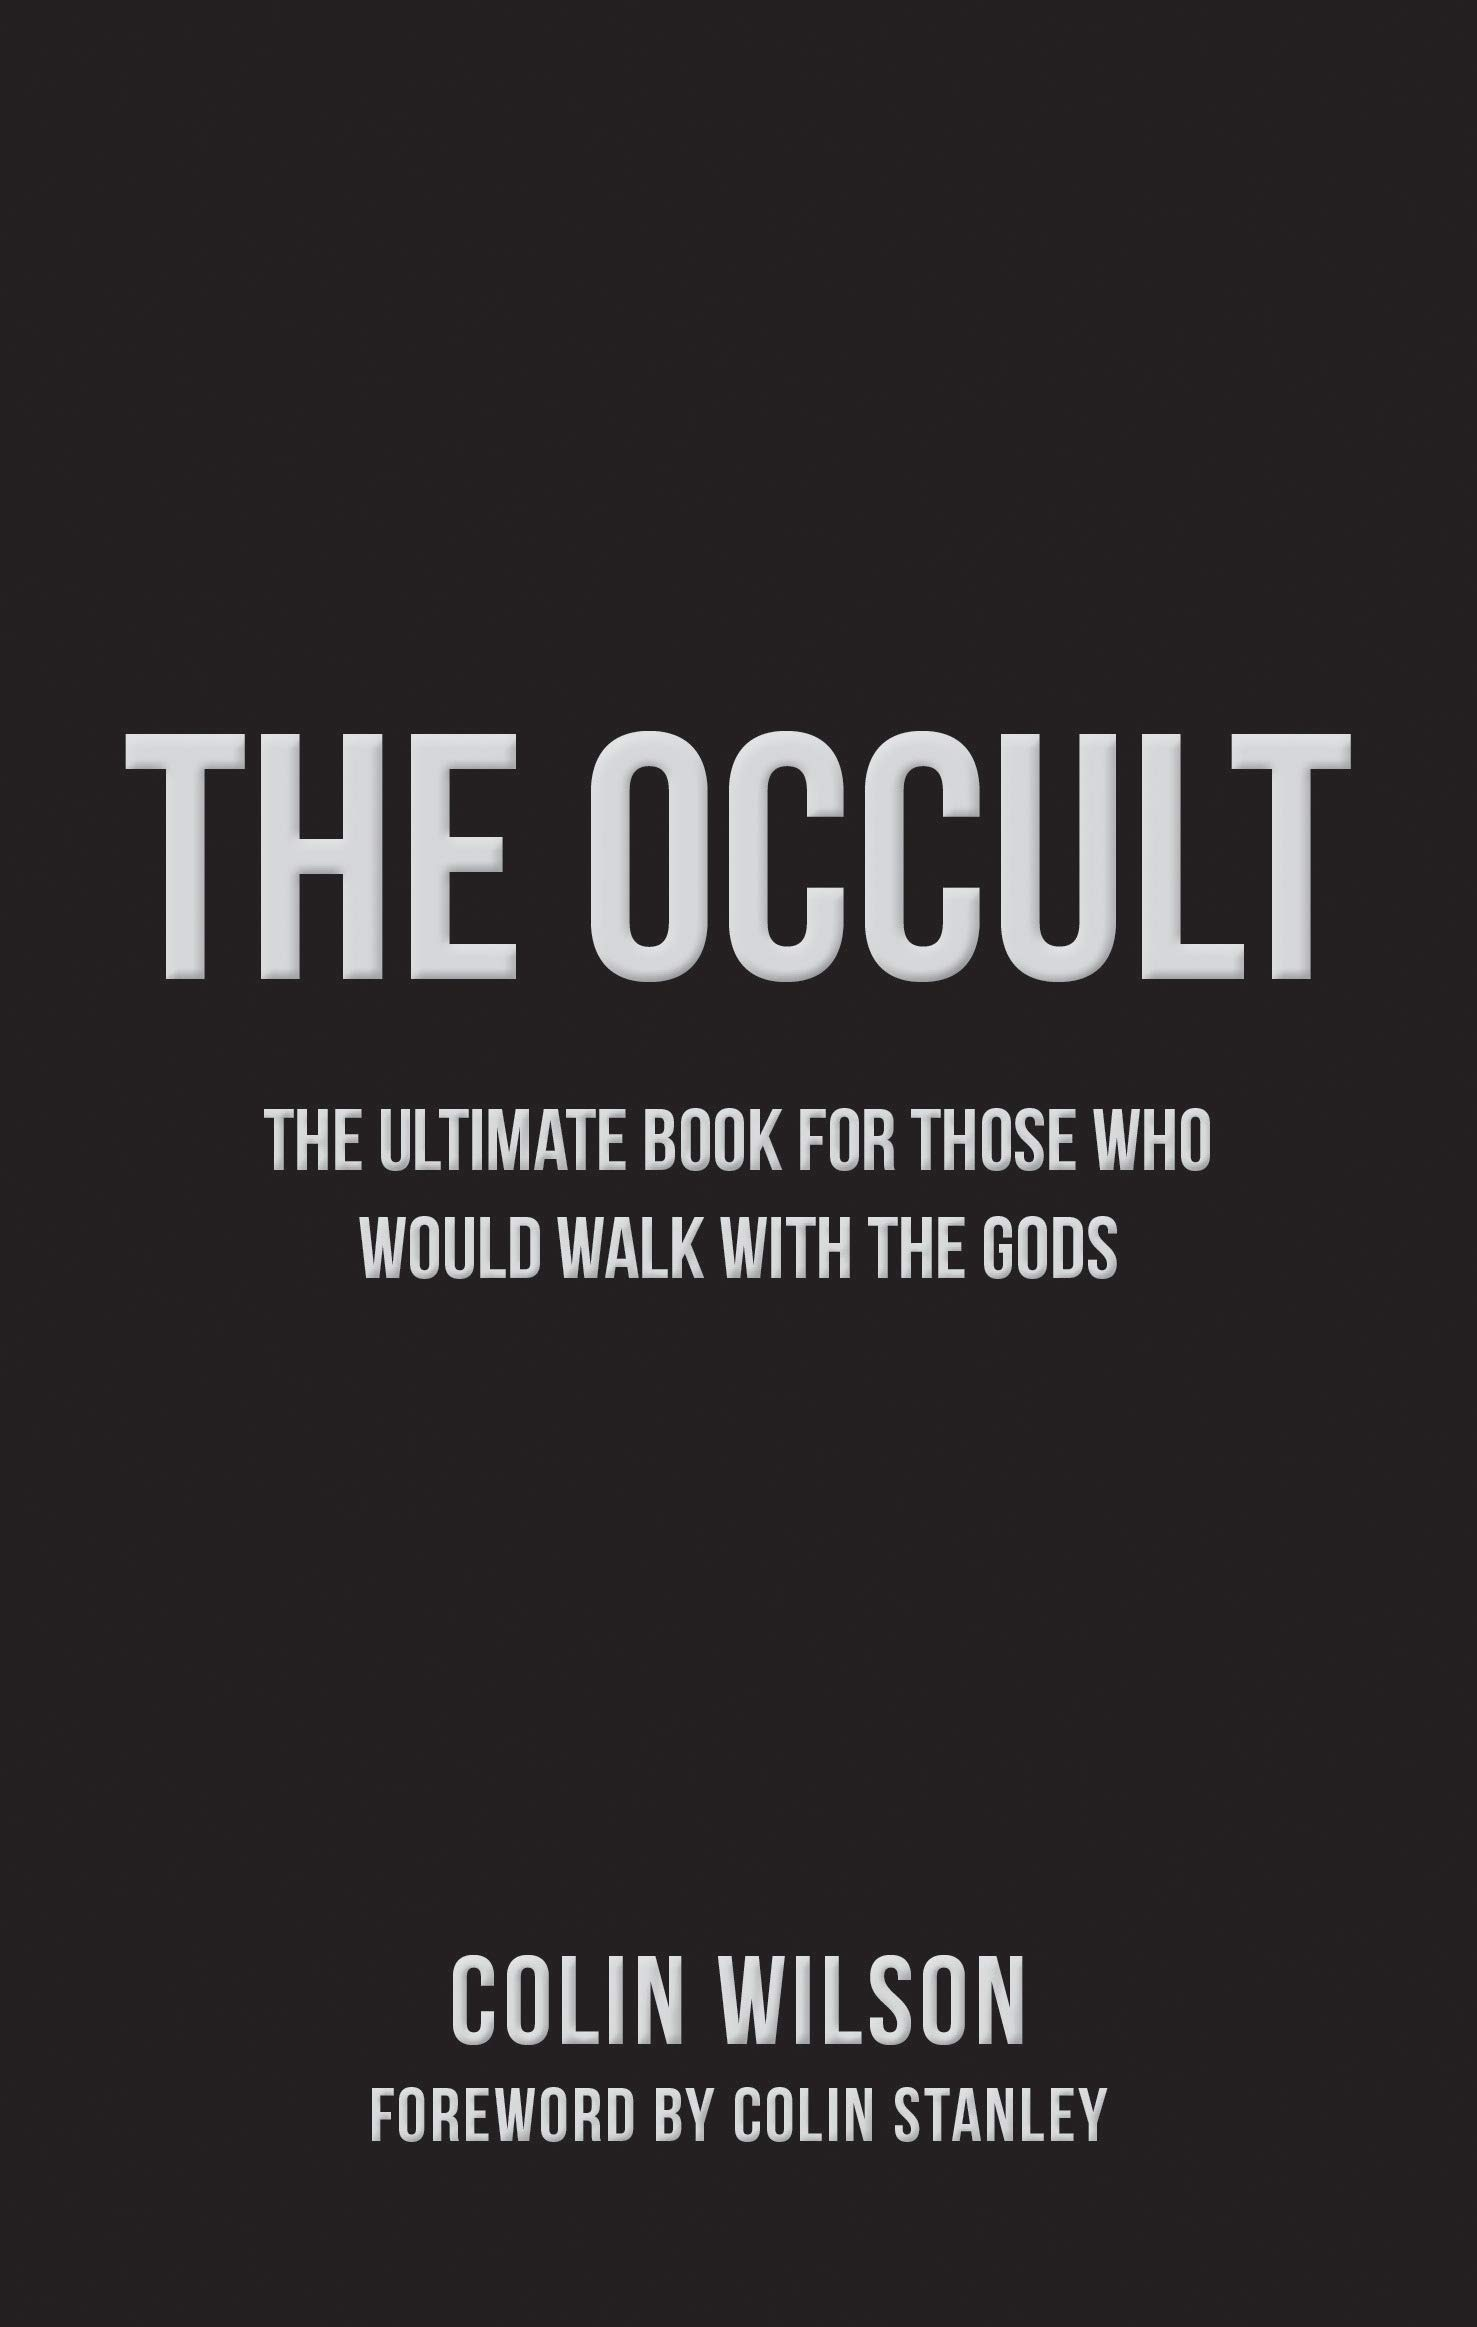 The Occult: The Ultimate Guide for Those Who Would Walk with